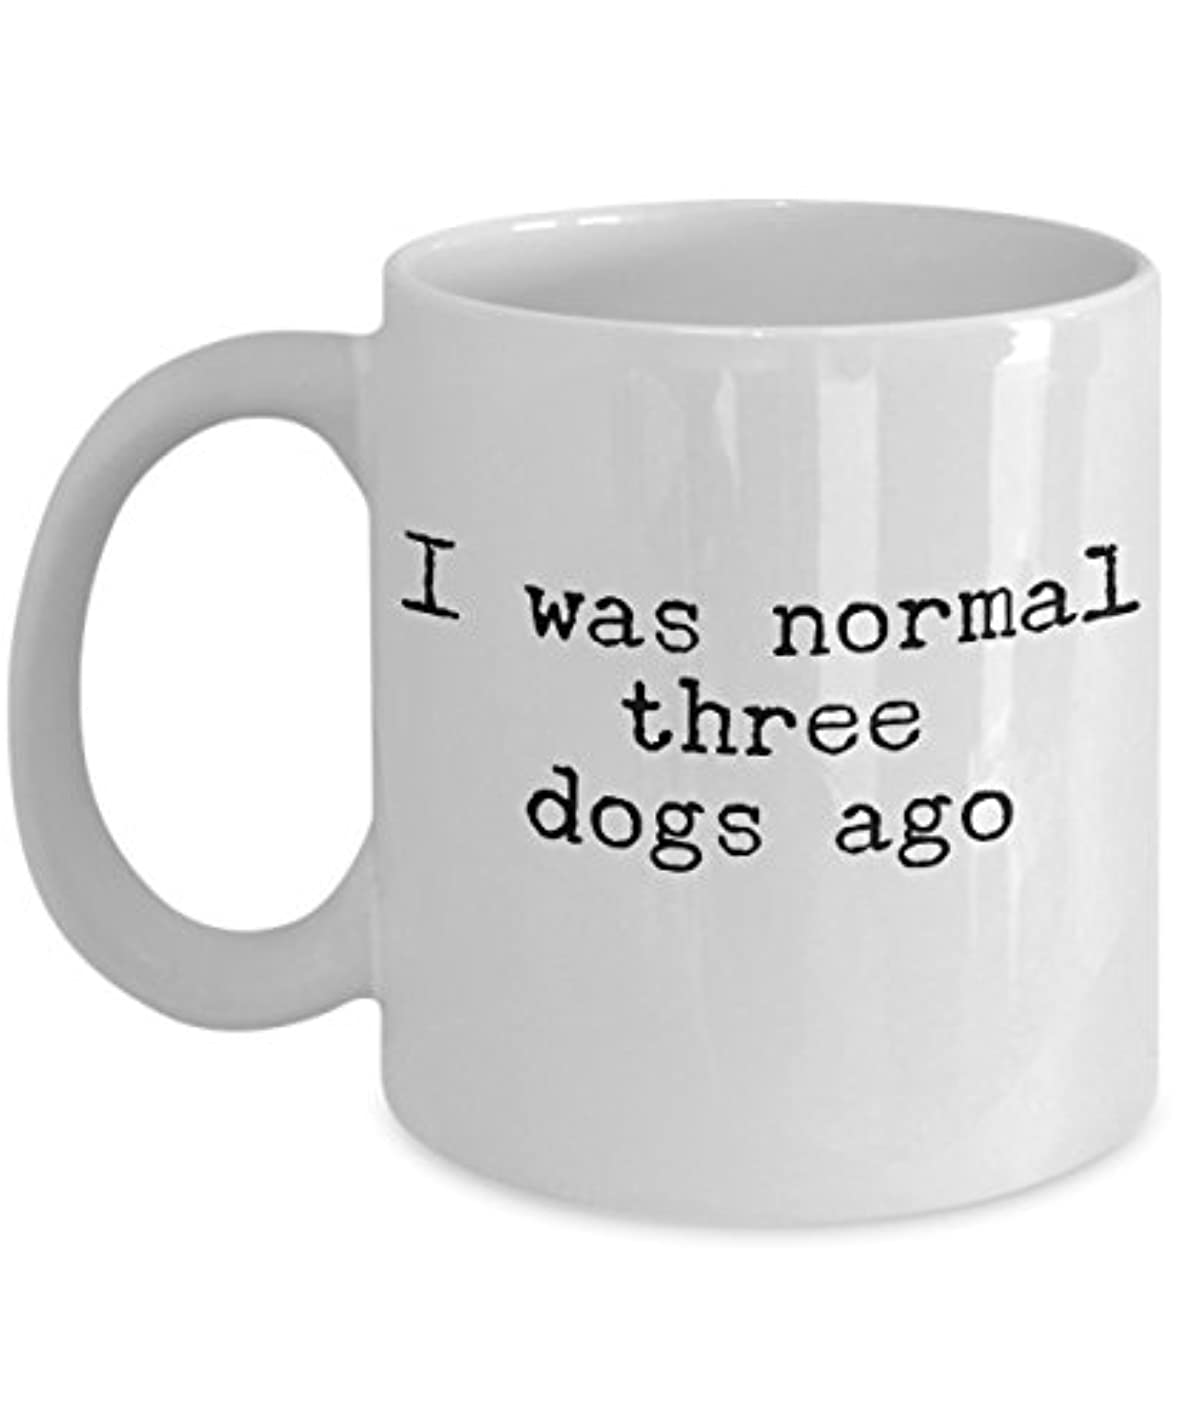 Funny Dog Loverマグ – I was通常3犬Ago Cup – Great Gift for Dog Lovers、所有者、犬Moms &犬Dads – 11 ozホワイトセラミックコーヒーマグ 11oz GB-1924169-20-White